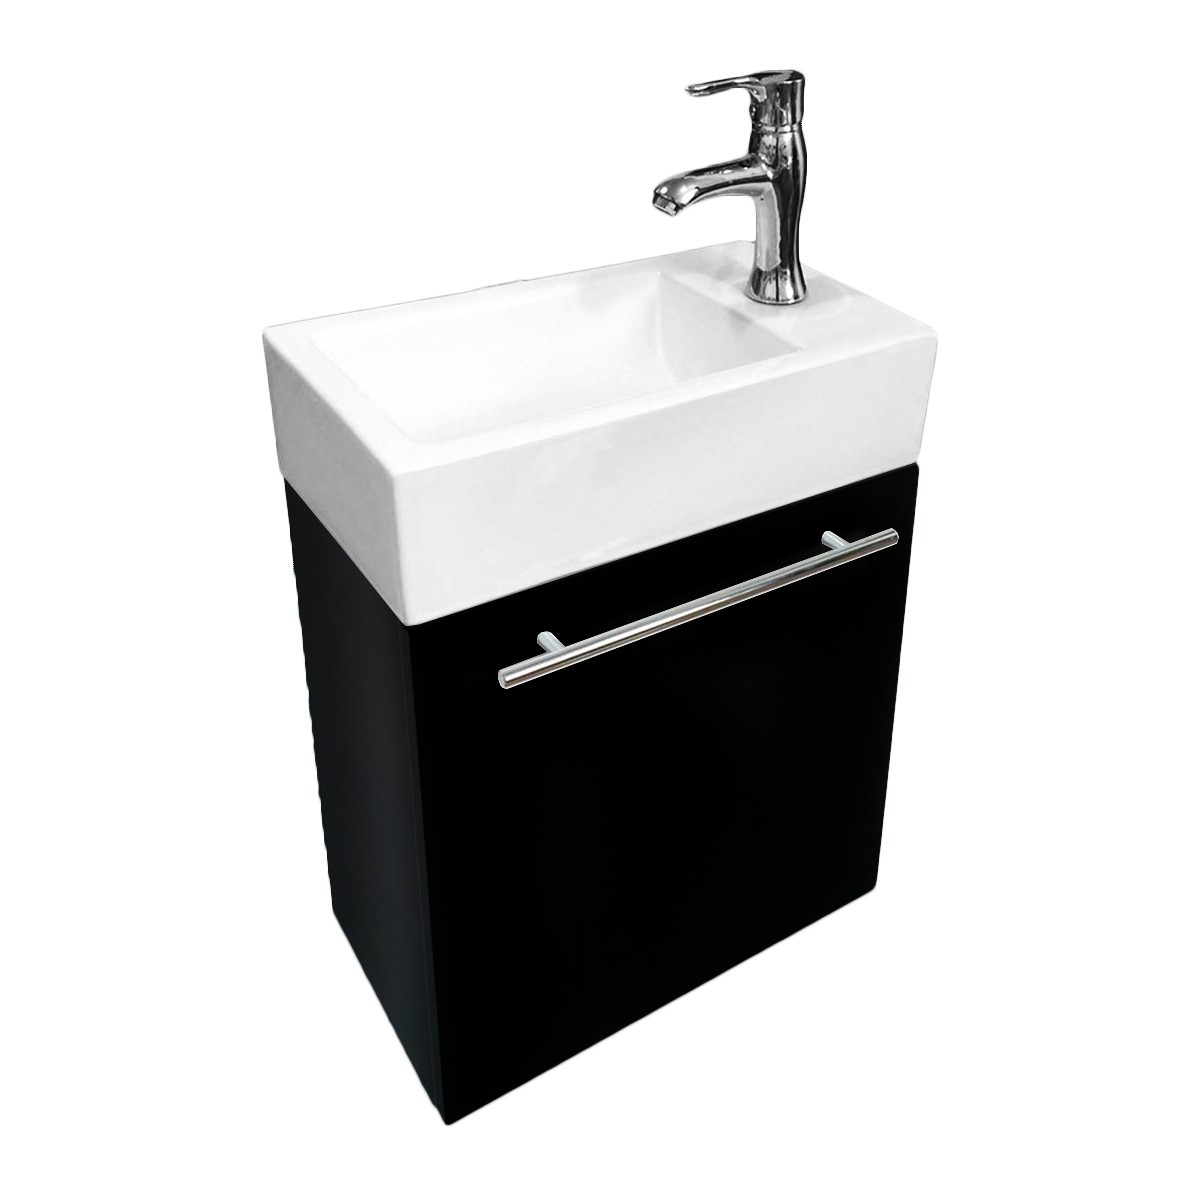 Small Bathroom Vanities With Sink Renovator S Supply Small Bathroom Vanity Cabinet Sink Wall Mount With Towel Bar Faucet And Drain